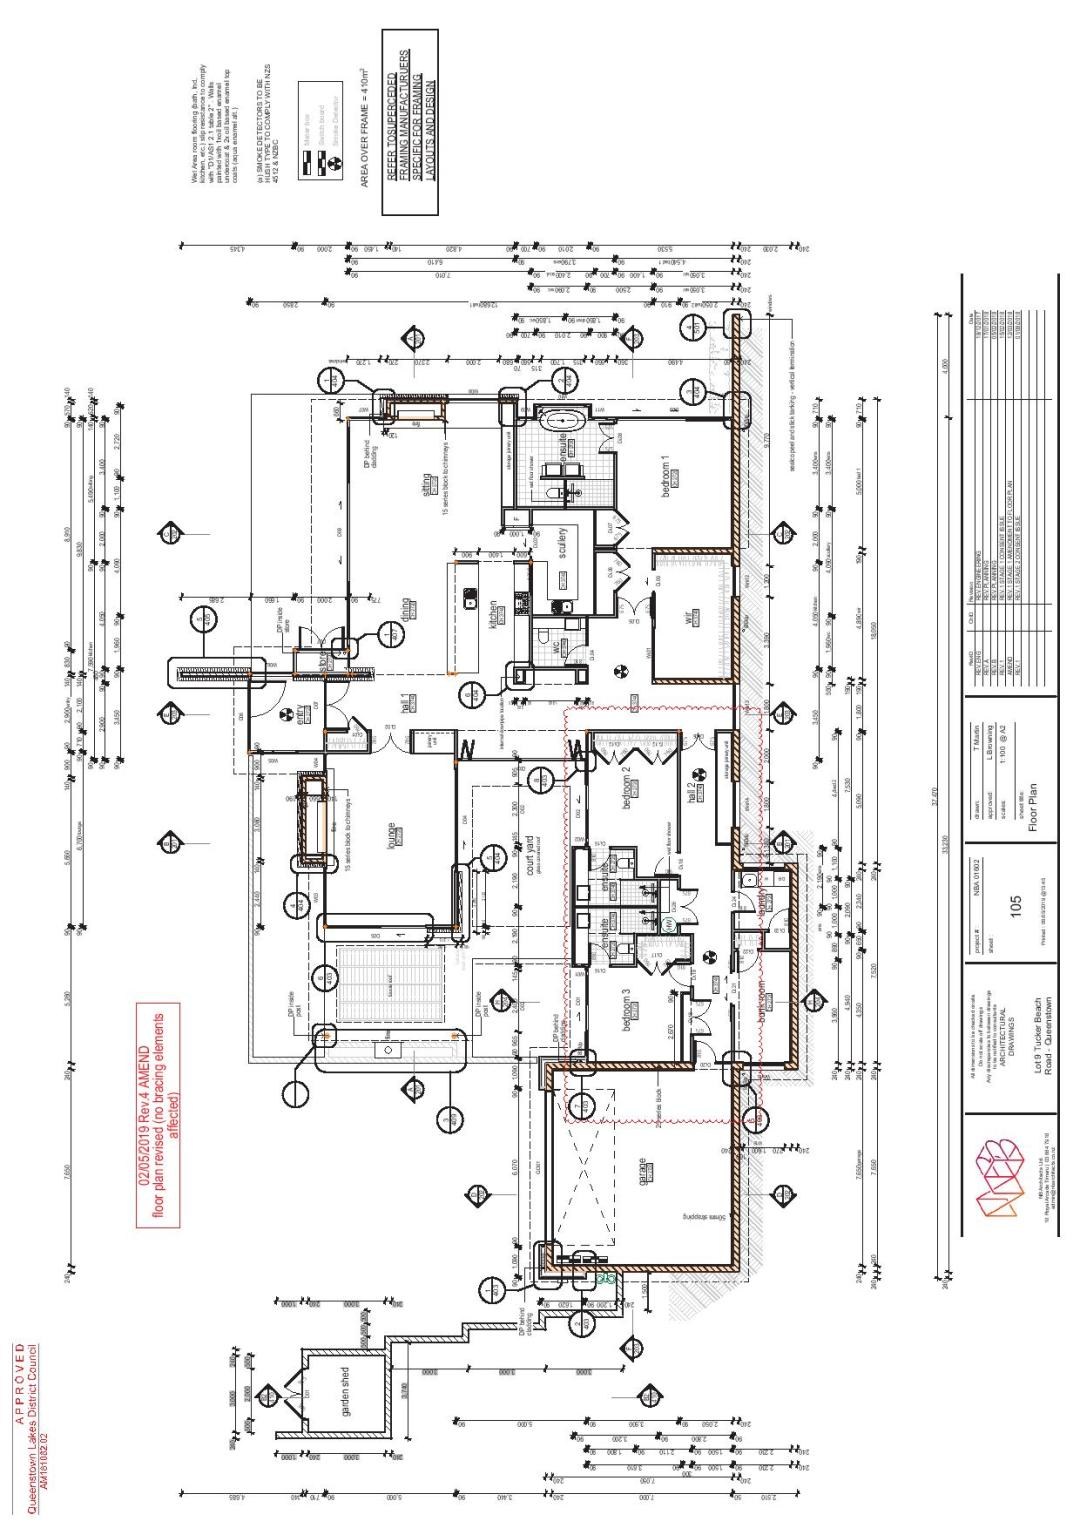 AM181082.02 FLOOR Plan-page-001